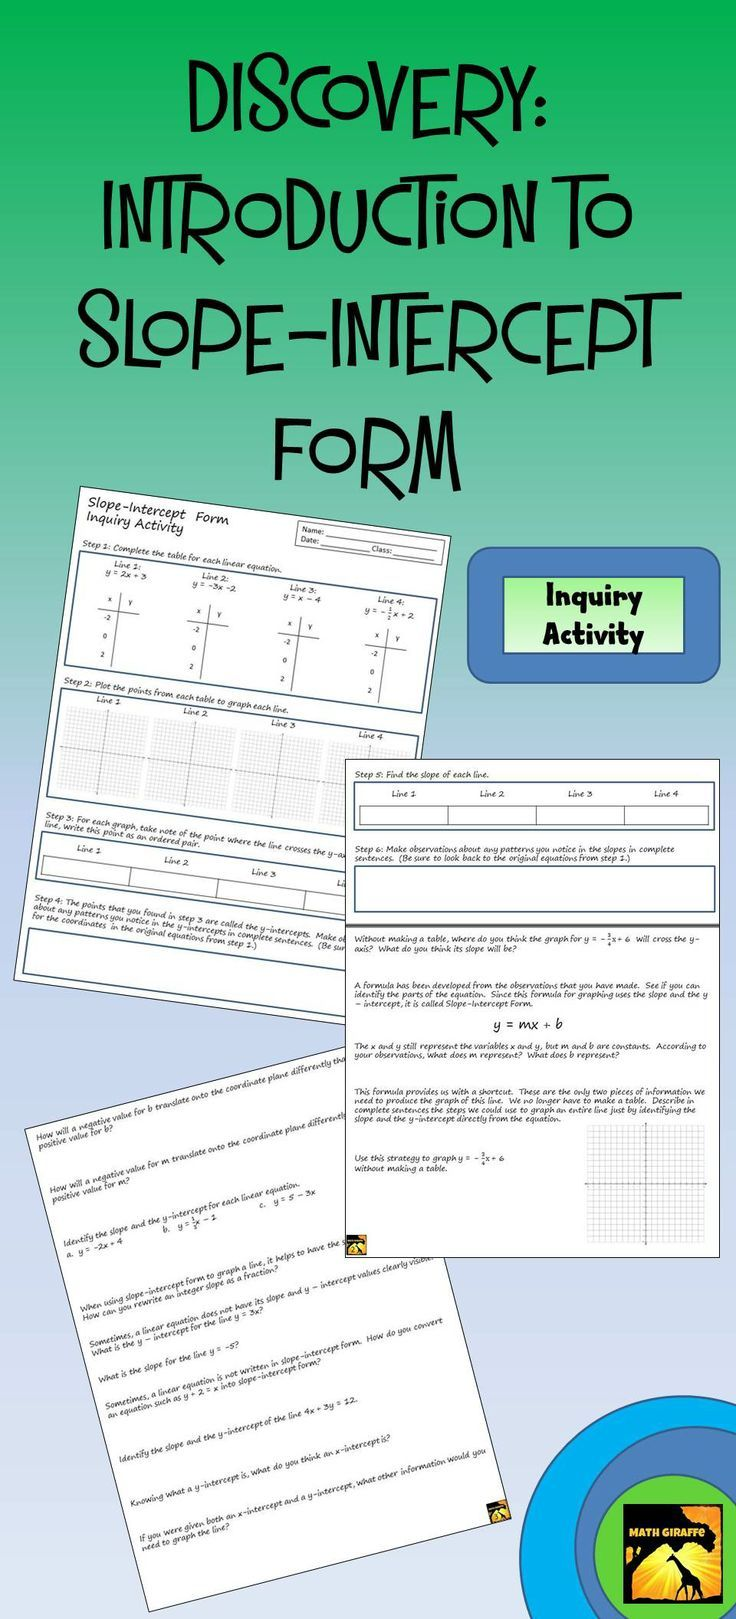 Slope intercept form inquiry activity students algebra and maths introducing students to slope intercept form through guided discovery inquiry based lesson falaconquin